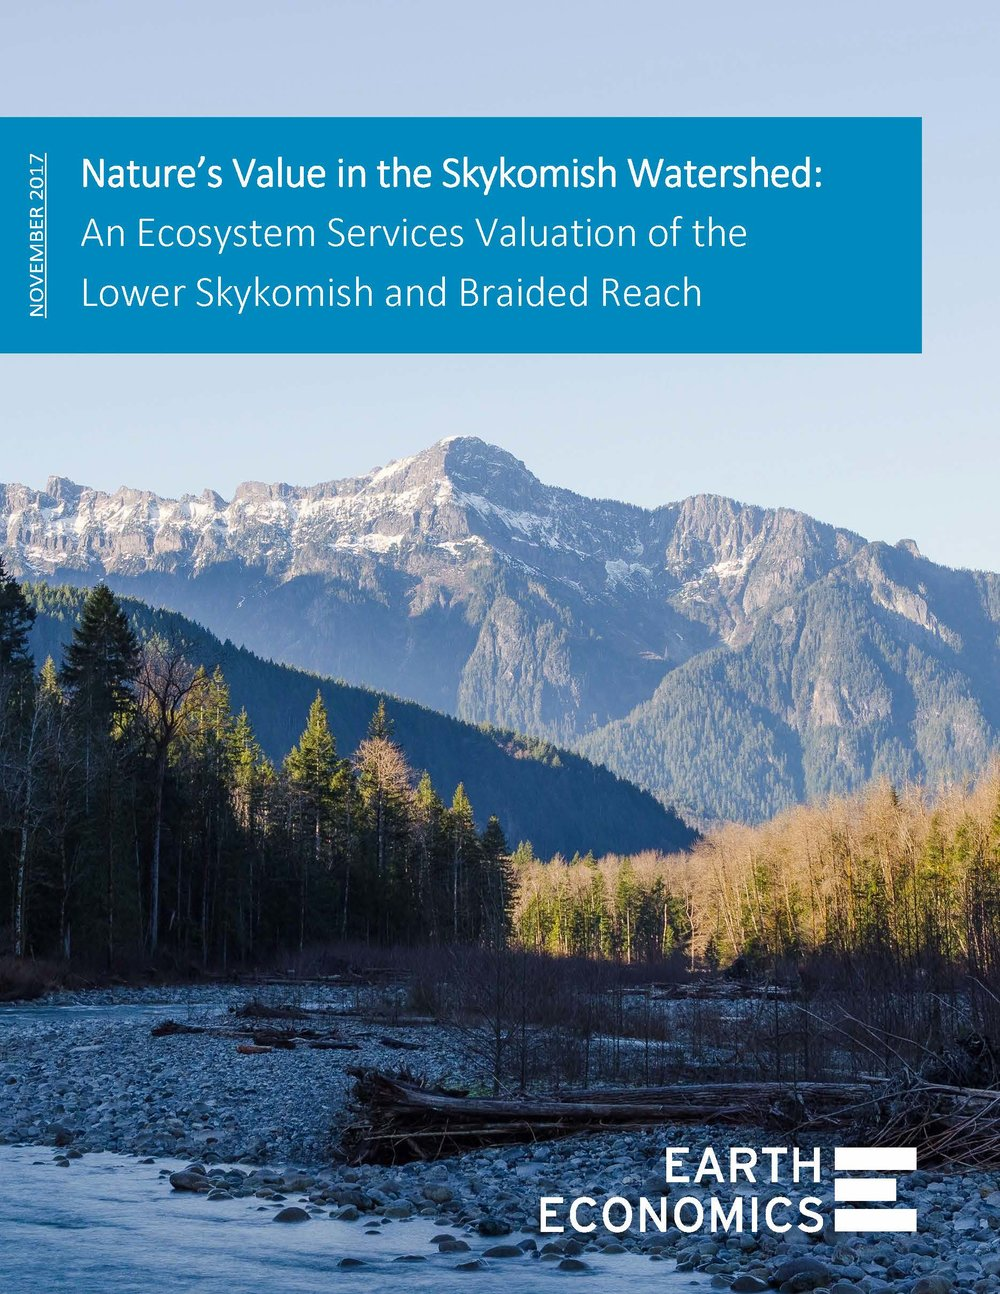 Cover_NaturesValueintheSkykomishWatershed_EarthEconomics_Nov2017.jpg